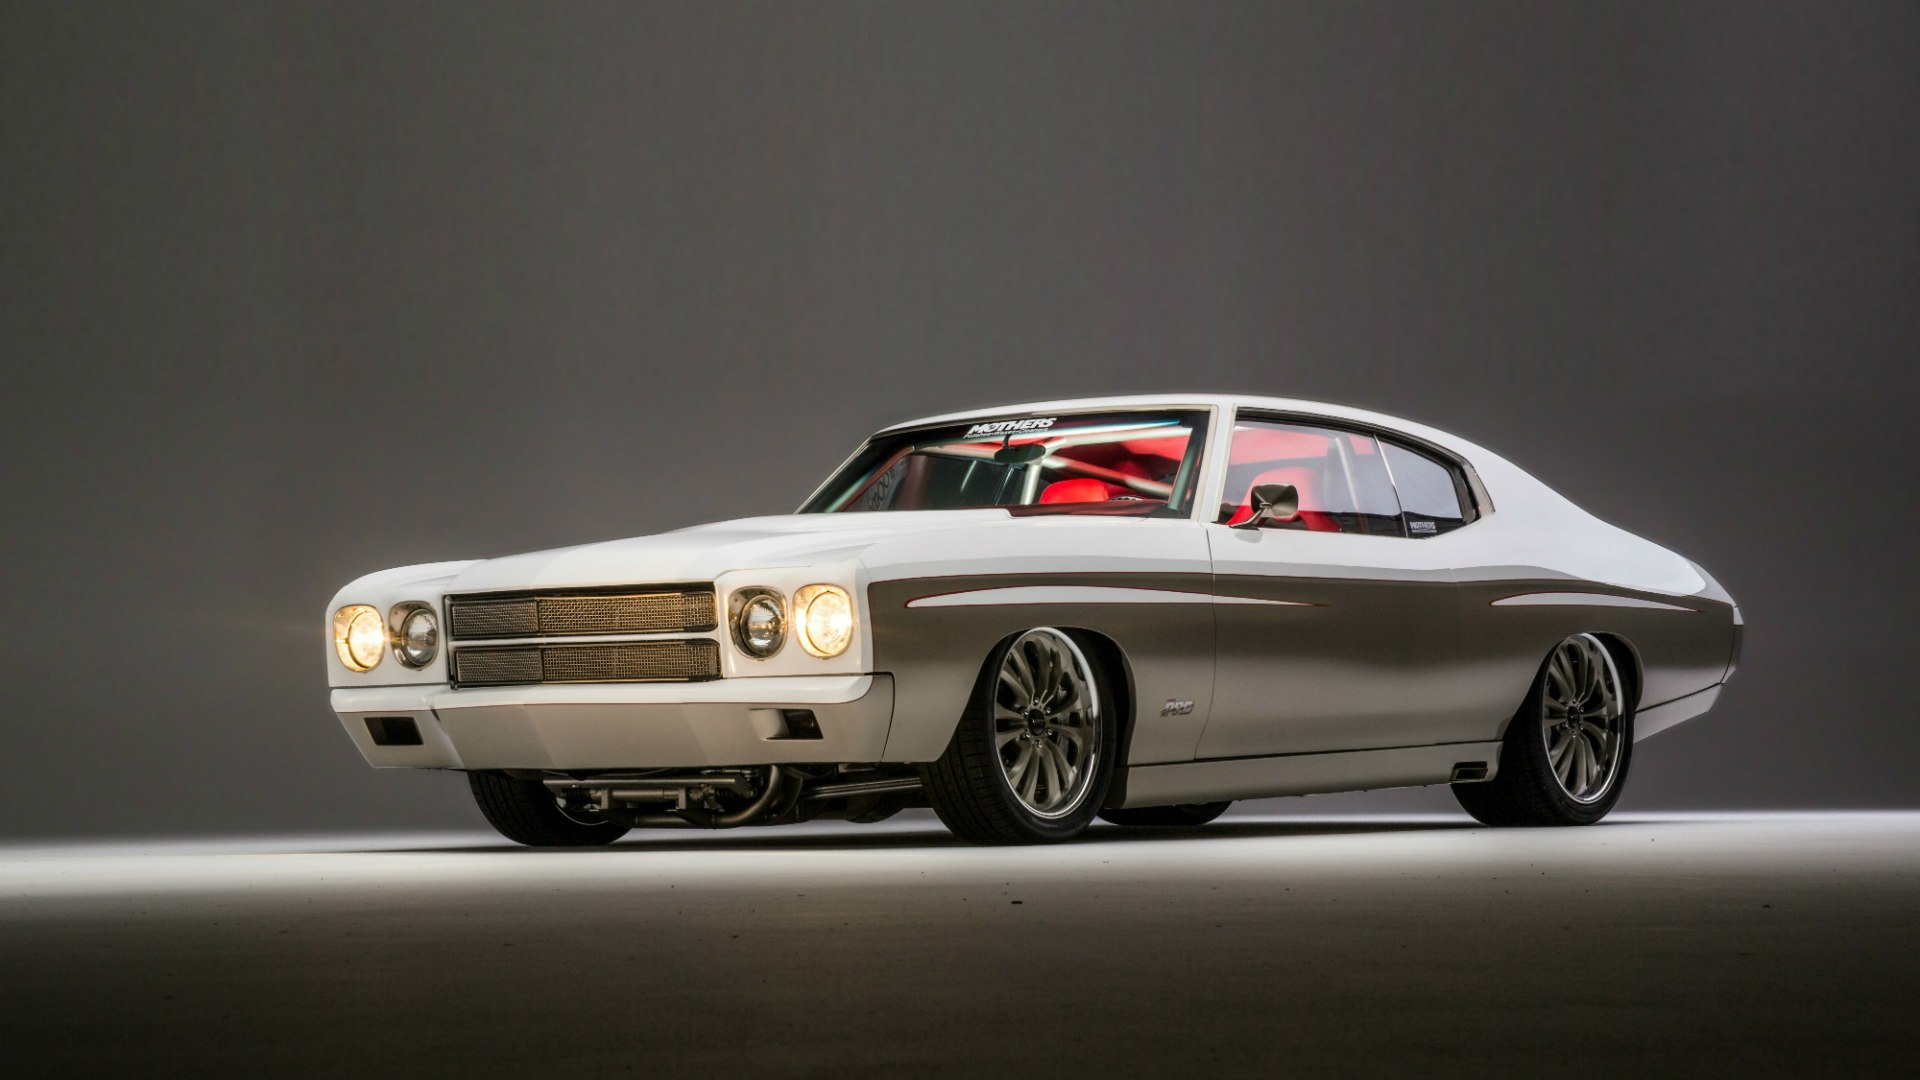 Chevrolet Chevelle SS beautiful car muscle car tuning wallpaper 1920x1080